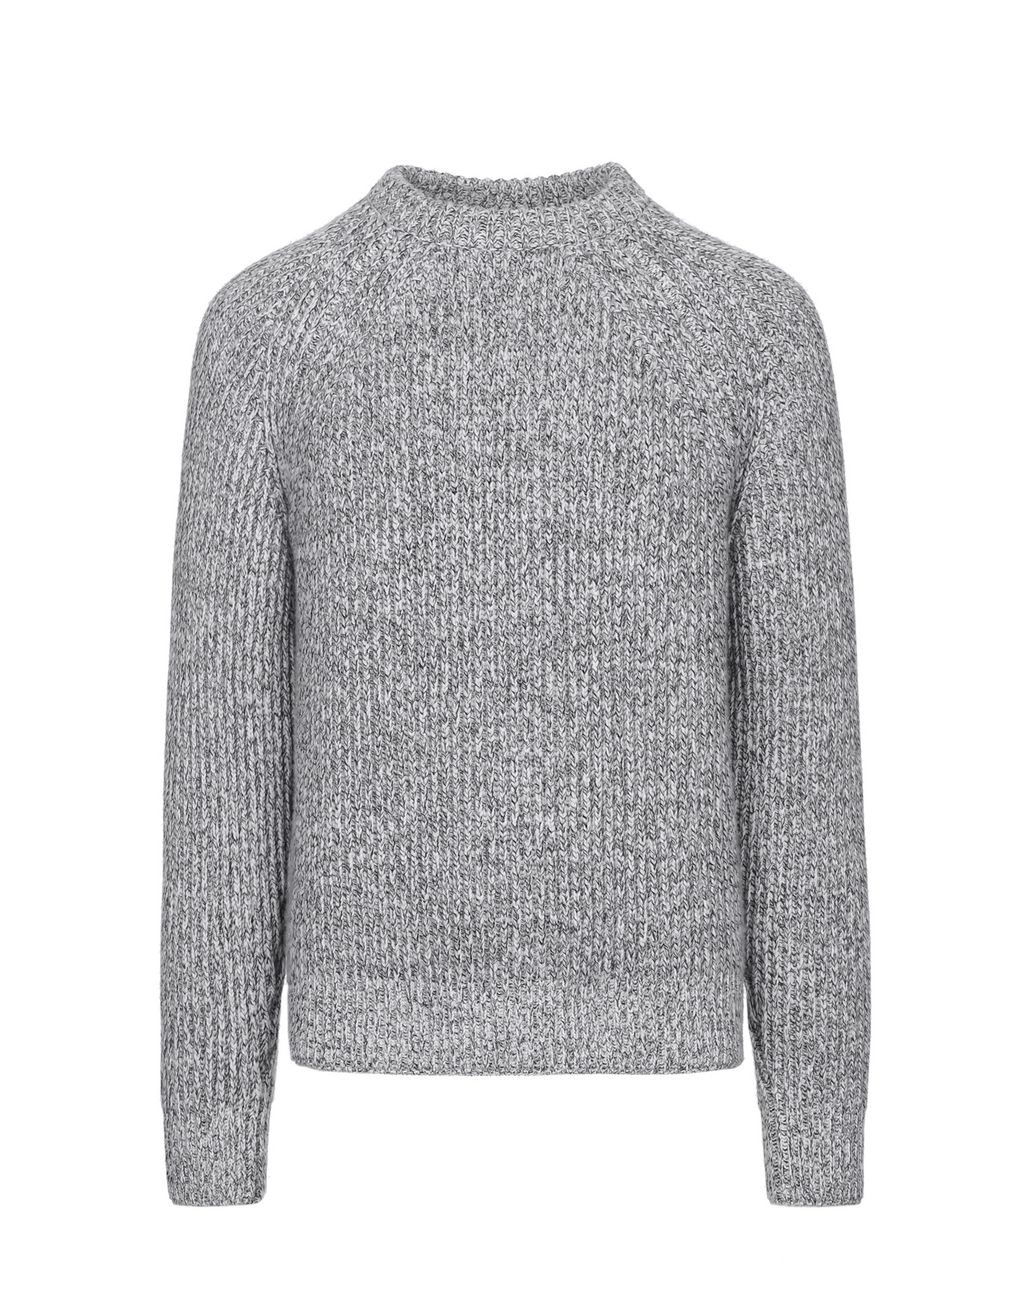 BRIONI Gray Mouliné Crew-Neck Sweater Knitwear Man f